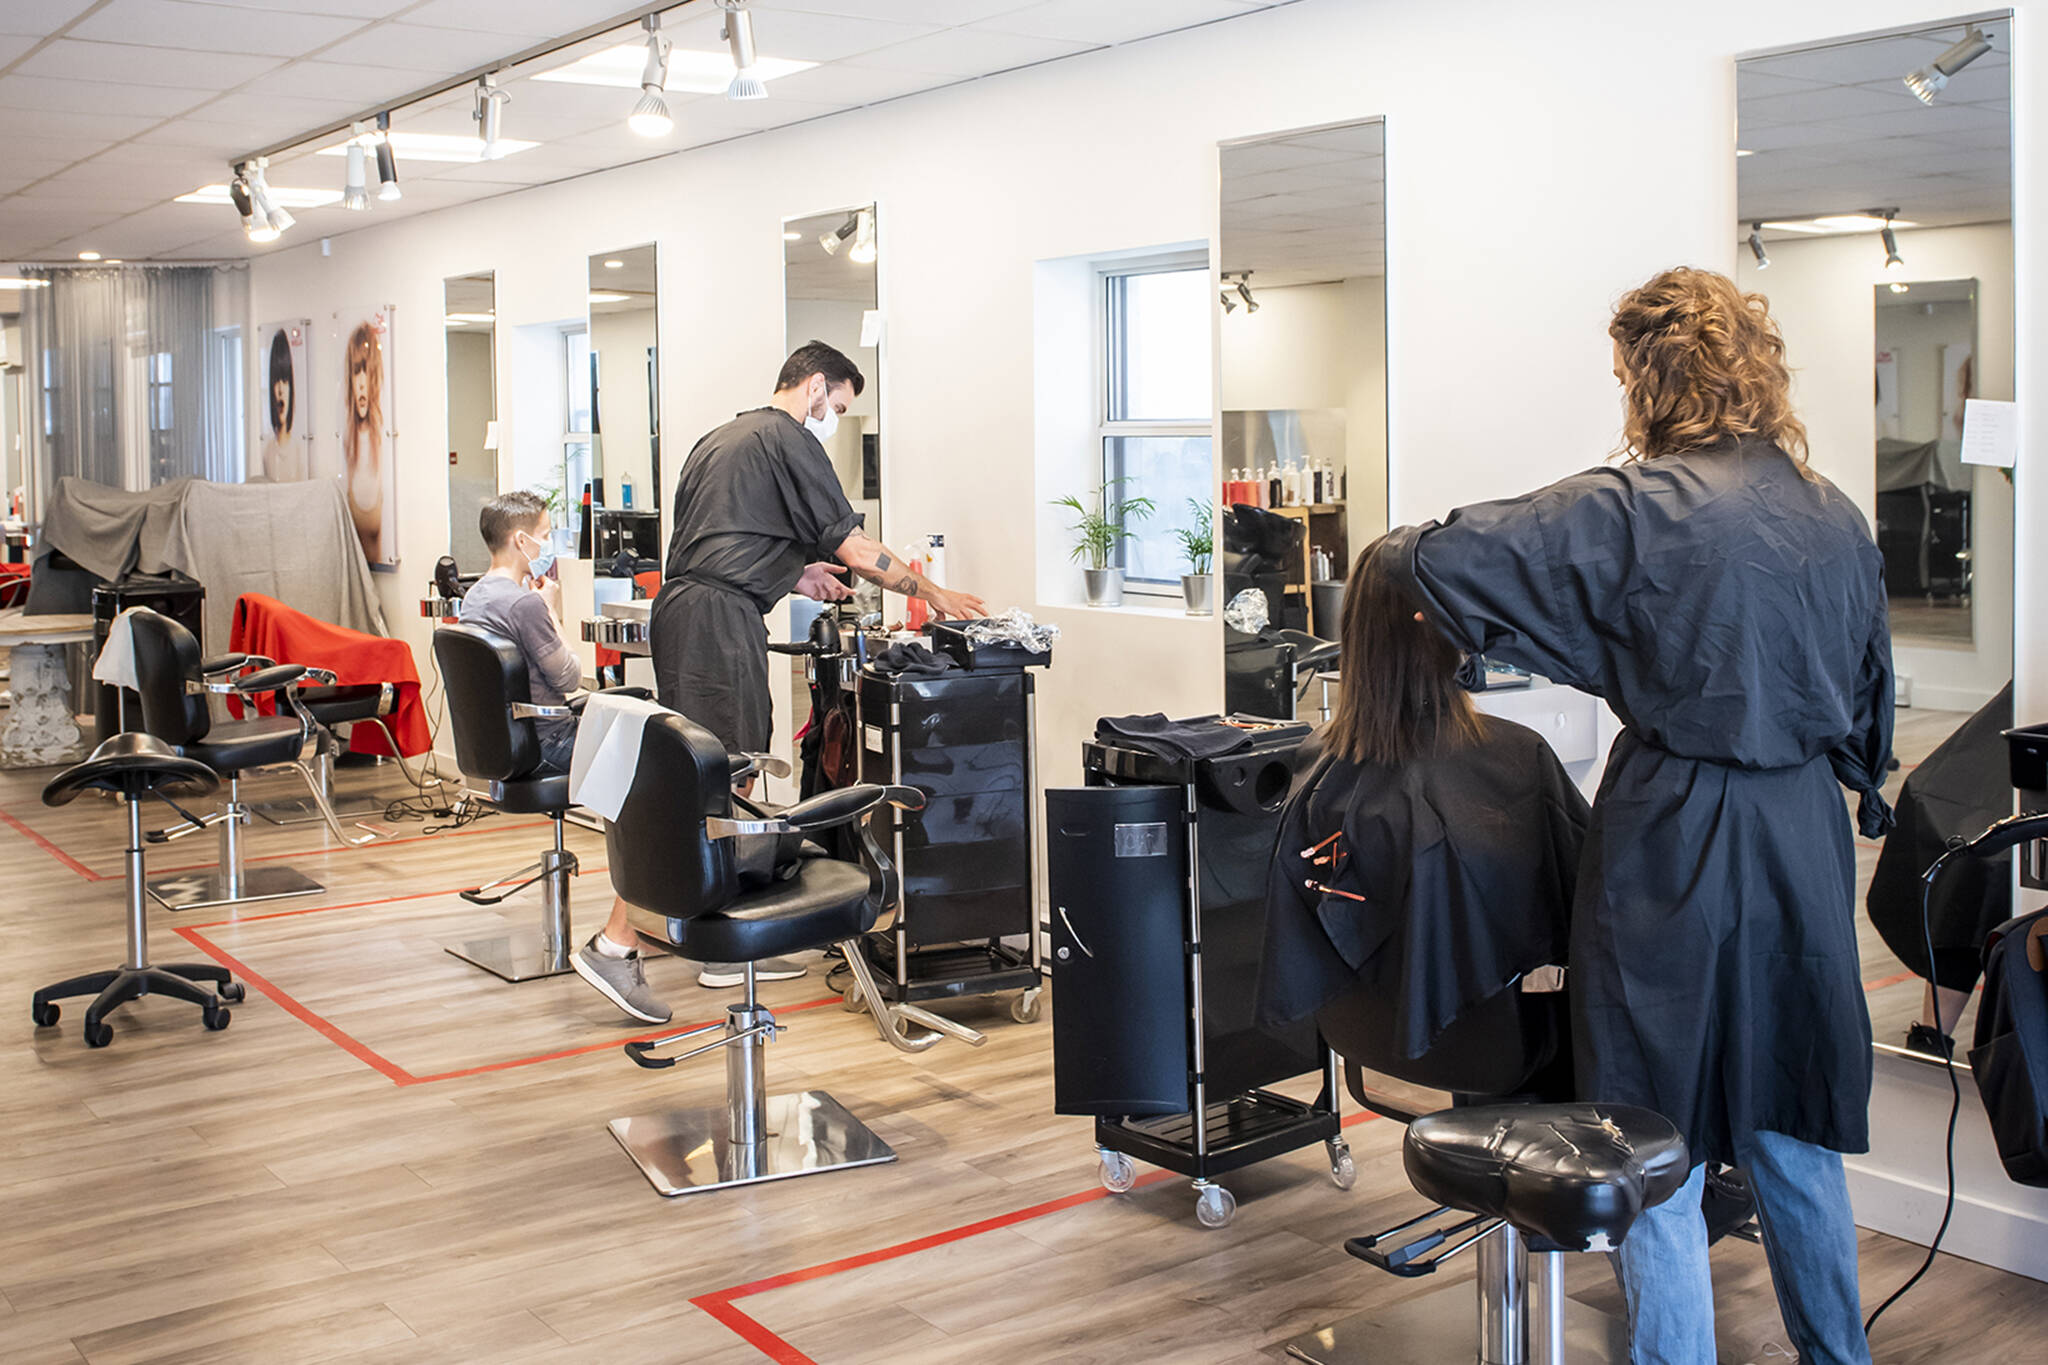 Beauty Salon – Different Services to Check Out